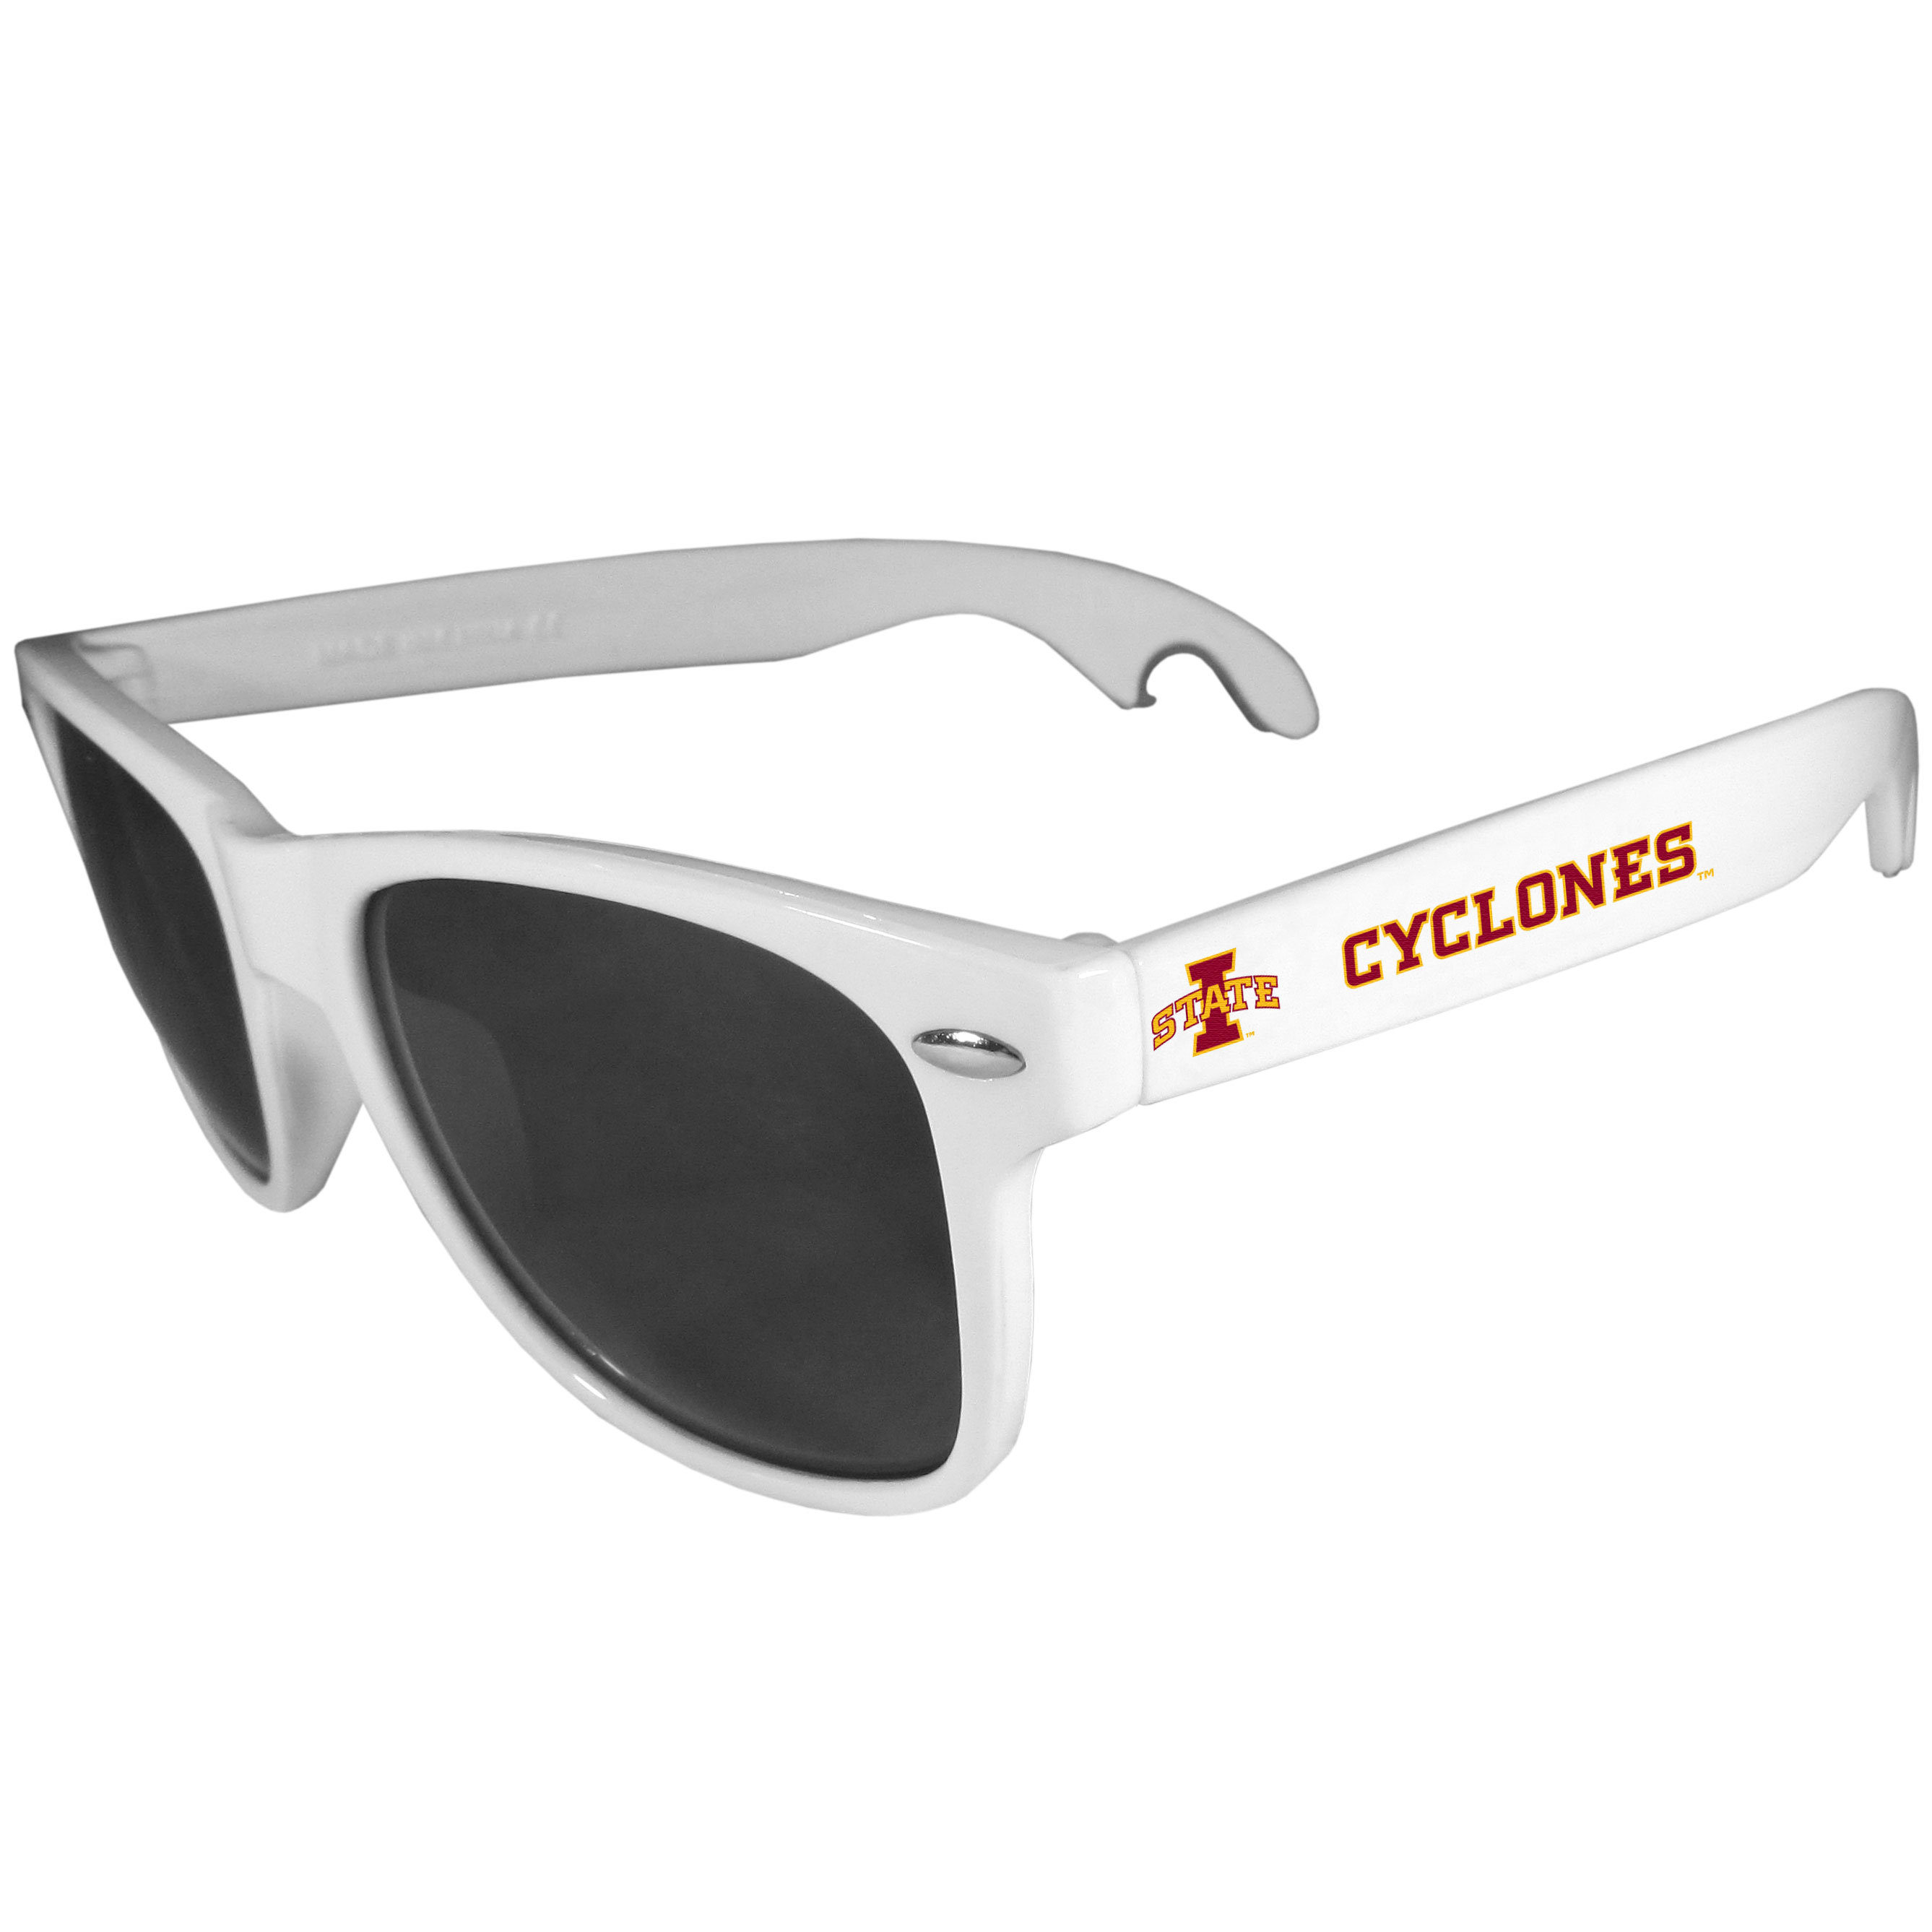 Iowa St. Cyclones Beachfarer Bottle Opener Sunglasses, White - Seriously, these sunglasses open bottles! Keep the party going with these amazing Iowa St. Cyclones bottle opener sunglasses. The stylish retro frames feature team designs on the arms and functional bottle openers on the end of the arms. Whether you are at the beach or having a backyard BBQ on game day, these shades will keep your eyes protected with 100% UVA/UVB protection and keep you hydrated with the handy bottle opener arms.